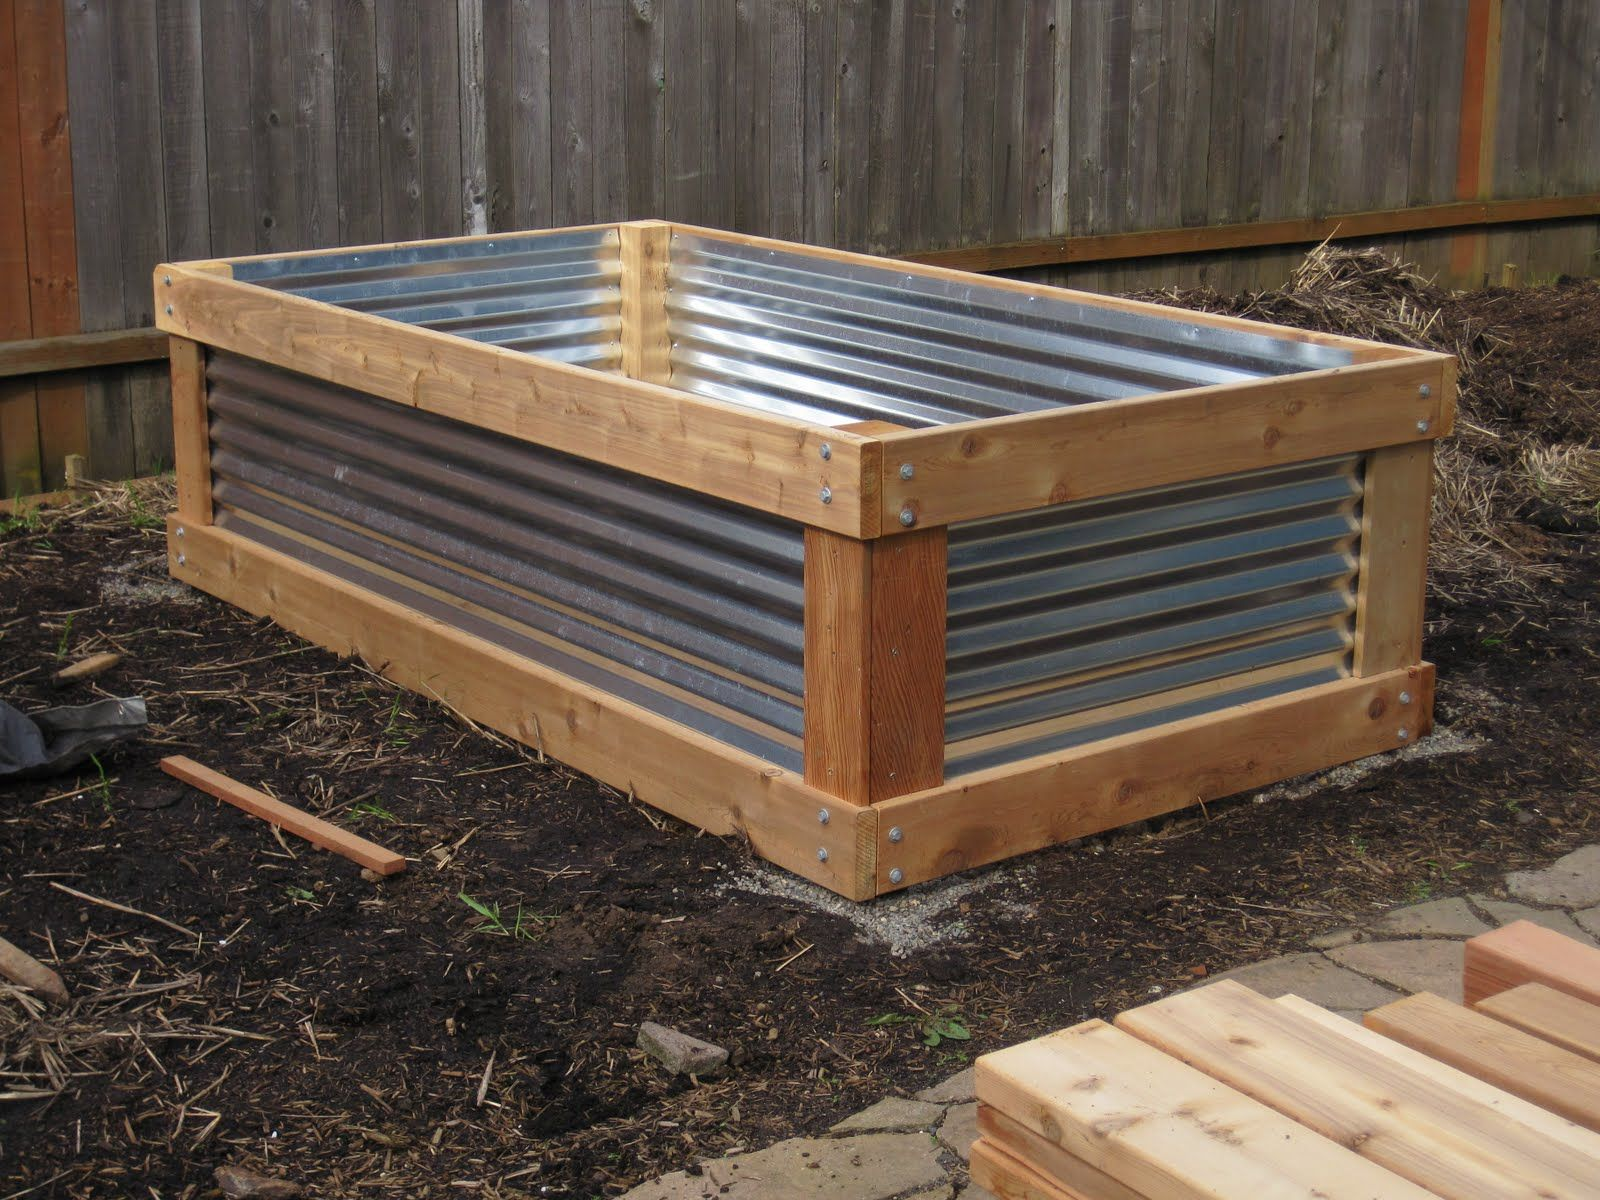 Aristata Land Arts Cedar Metal Raised Bed Project Container